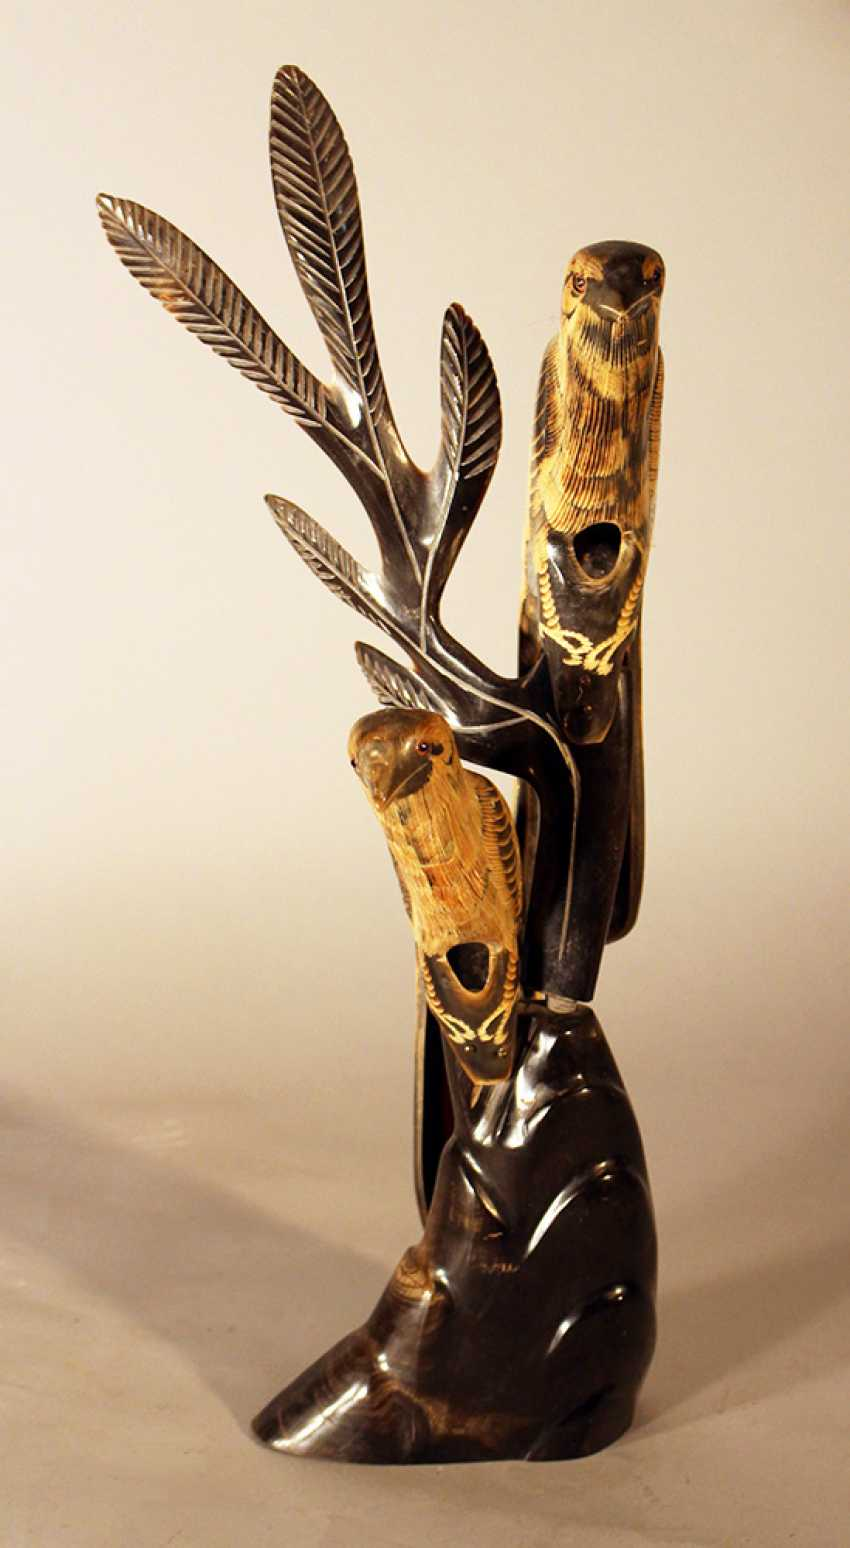 Asian horn sculpture of two birds sitting on a branch, partly engraved and with glass eyes - photo 2